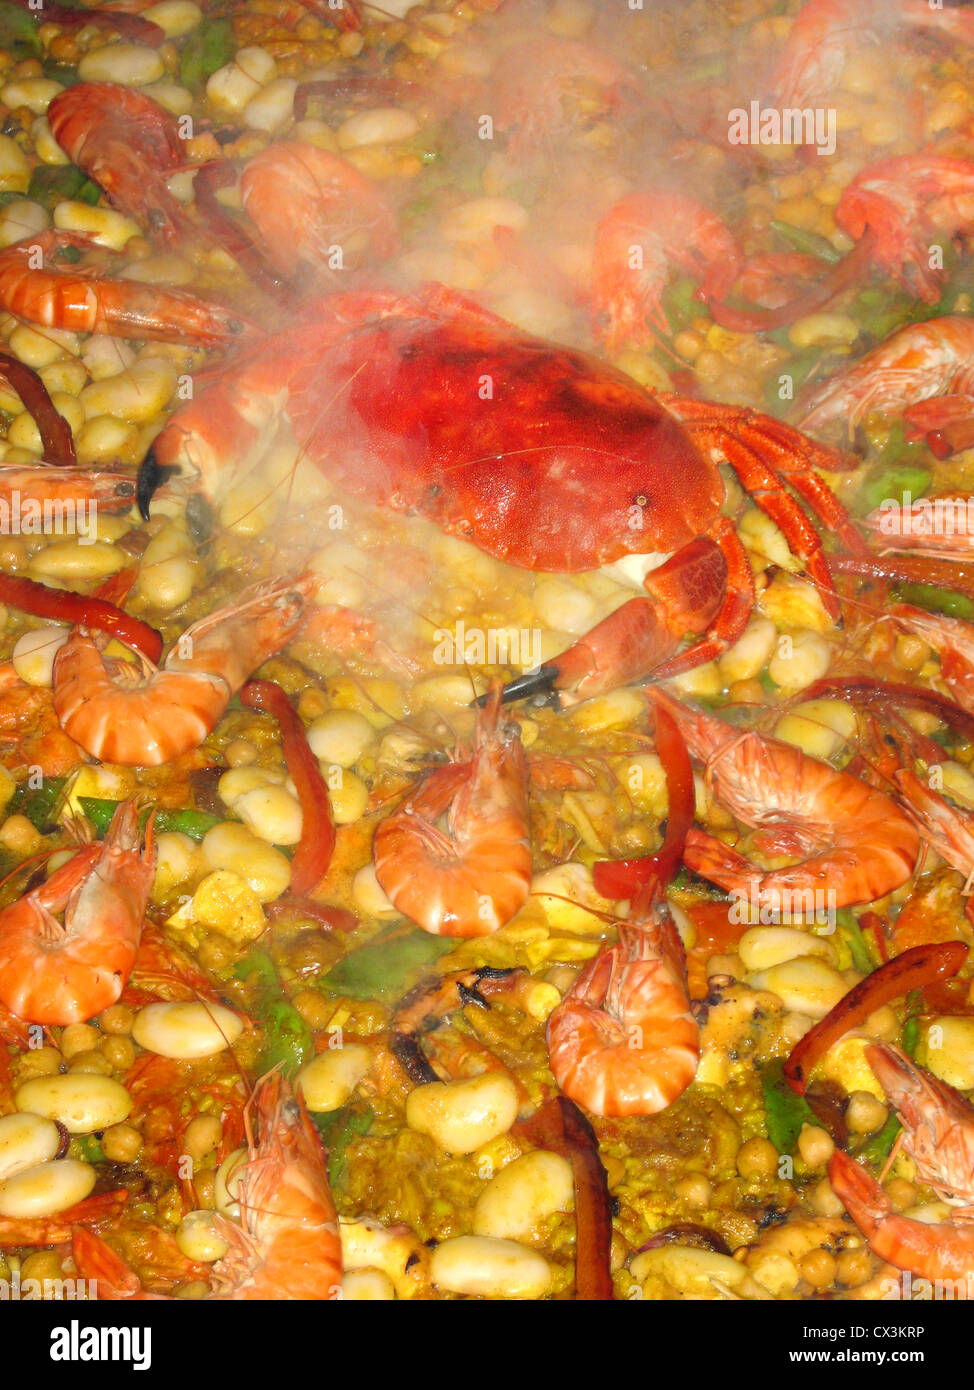 Paella in großer Pfanne - Stock Image